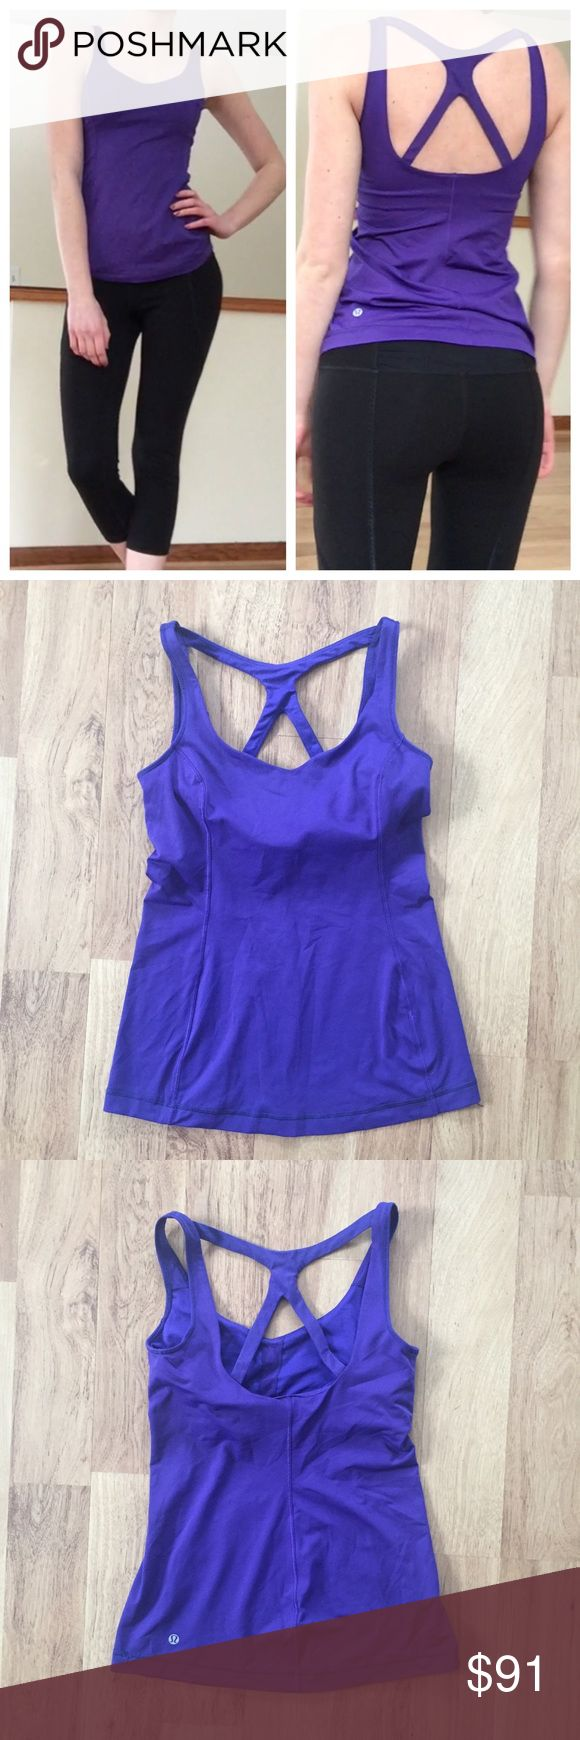 Lululemon Purple Strappy Back Tank Top Size 6 Built in bra! ⚜️I love receiving offers through the offer button!⚜️ Good condition, as seen in pictures! This isn't brand new it has some wear, it's been worn and washed. Fast same or next day shipping!📨 Open to offers but I don't negotiate in the comments so please use the offer button😊 lululemon athletica Tops Tank Tops